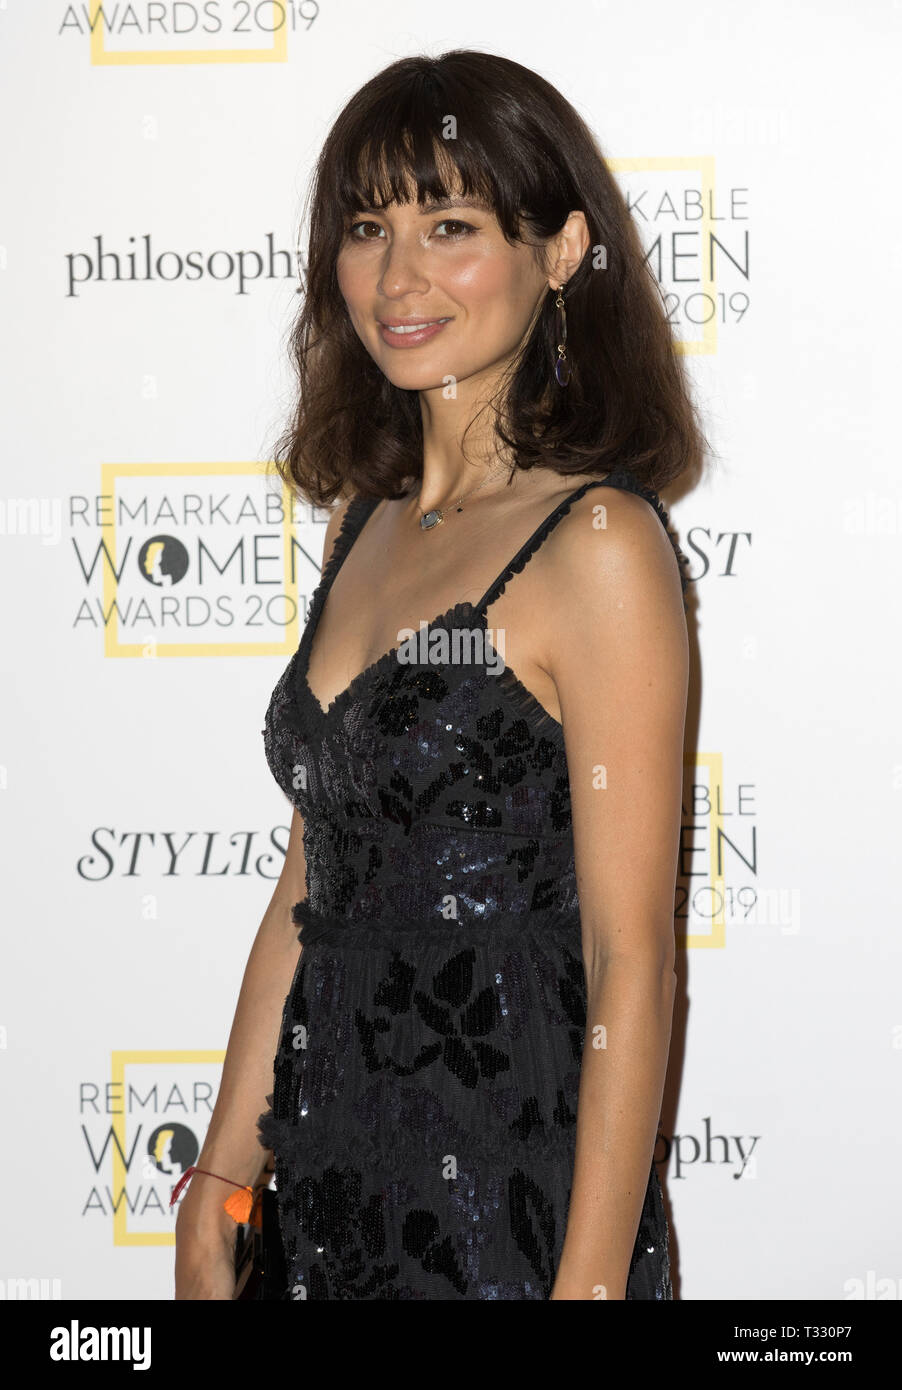 Guests attend the Stylist's inaugural Remarkable Women Awards in partnership with philosophy at Rosewood London  Featuring: Jasmine Hemsley Where: London, United Kingdom When: 05 Mar 2019 Credit: Phil Lewis/WENN.com Stock Photo